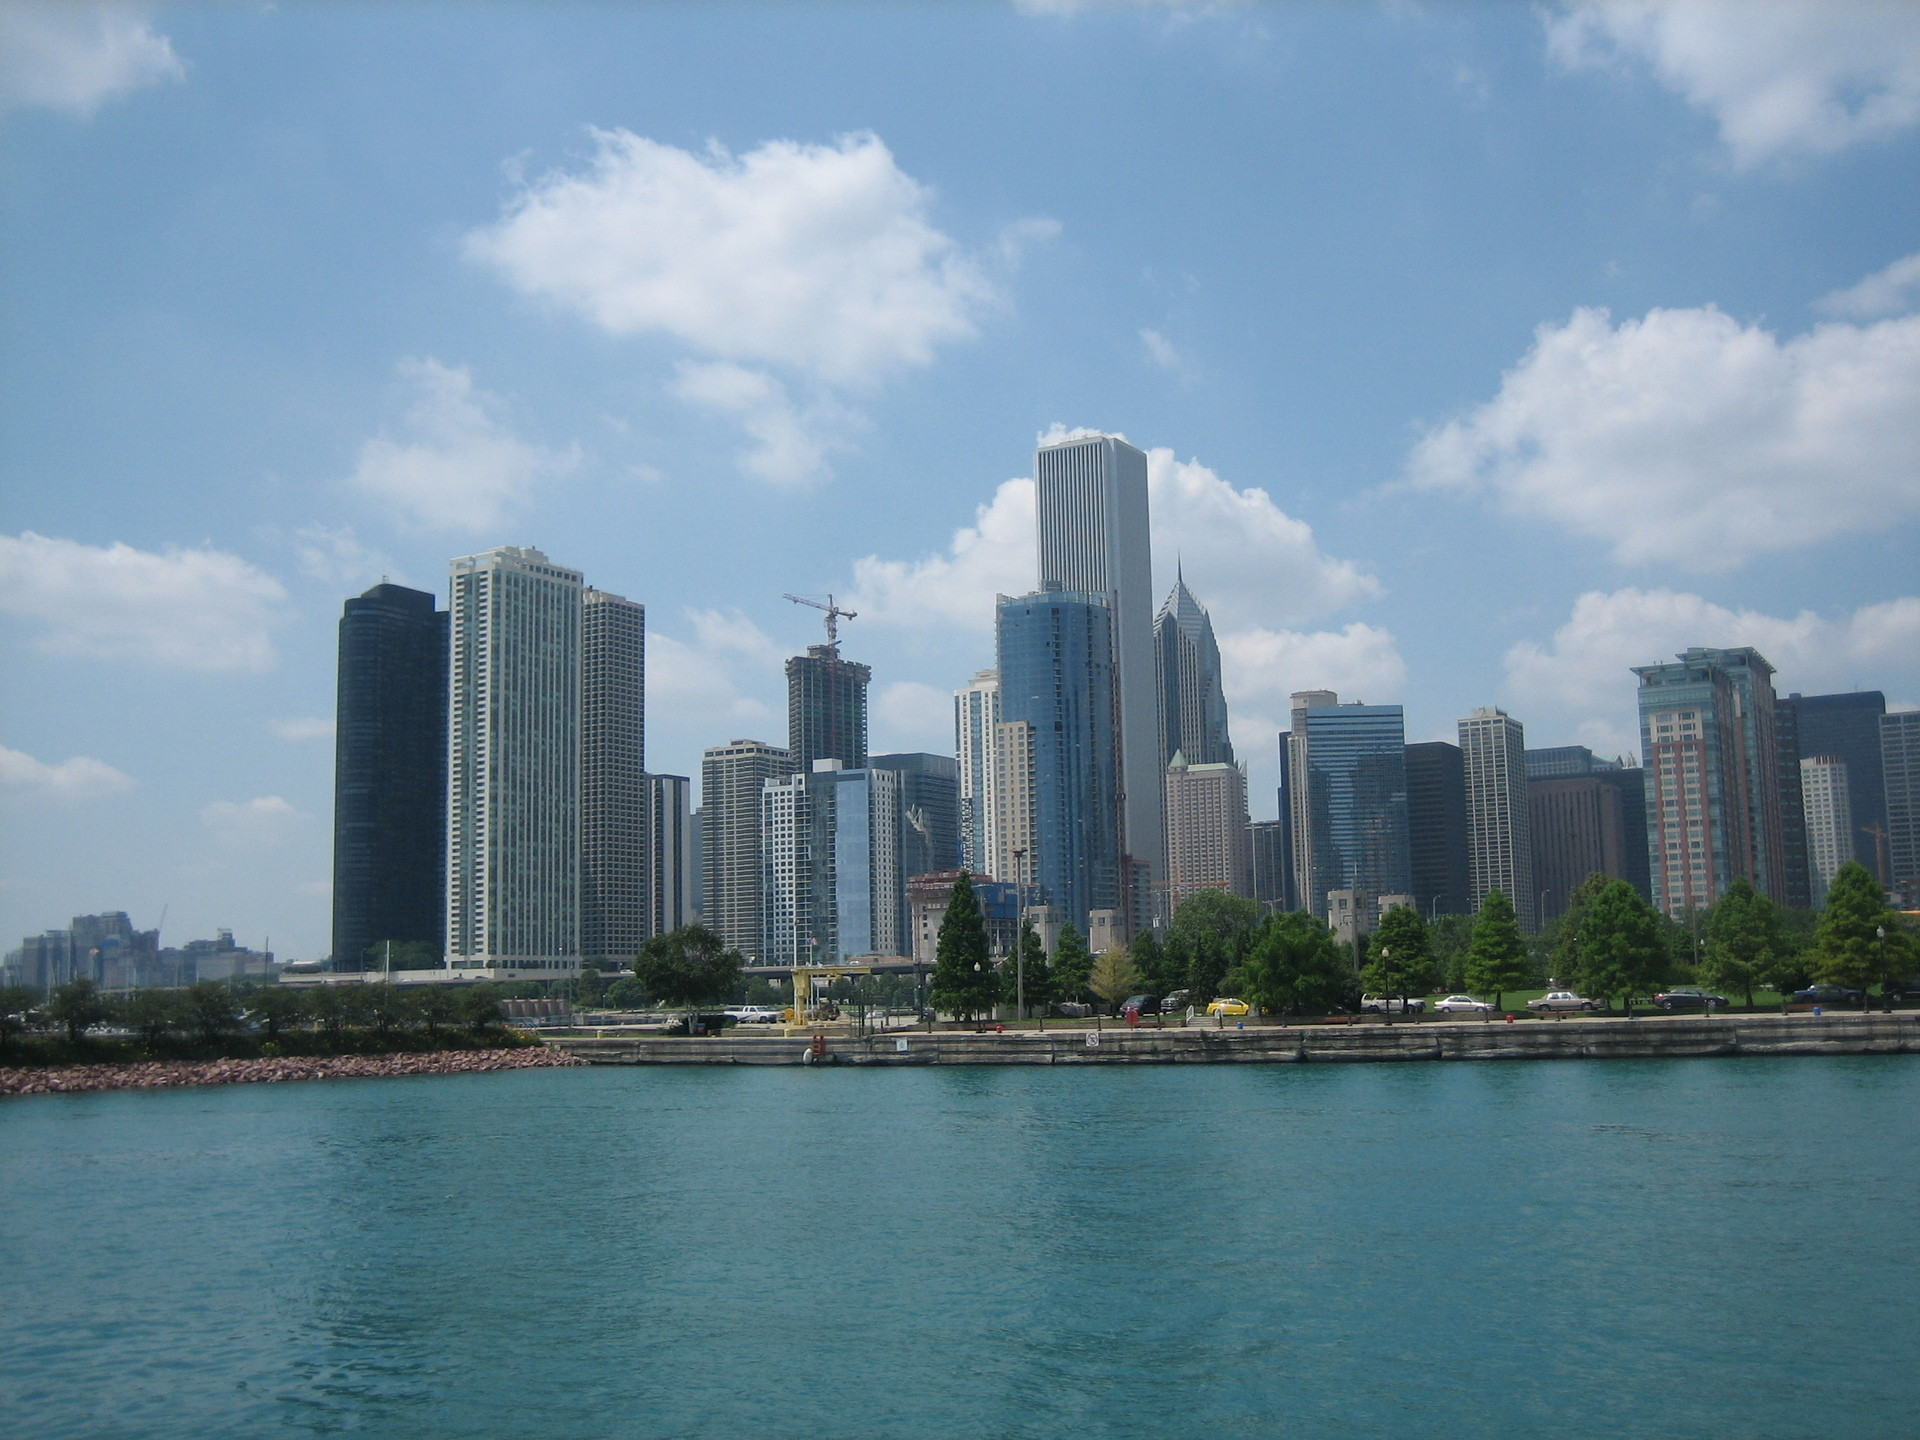 1920x1440 Chicago images Chicago Skyline HD wallpaper and background photos